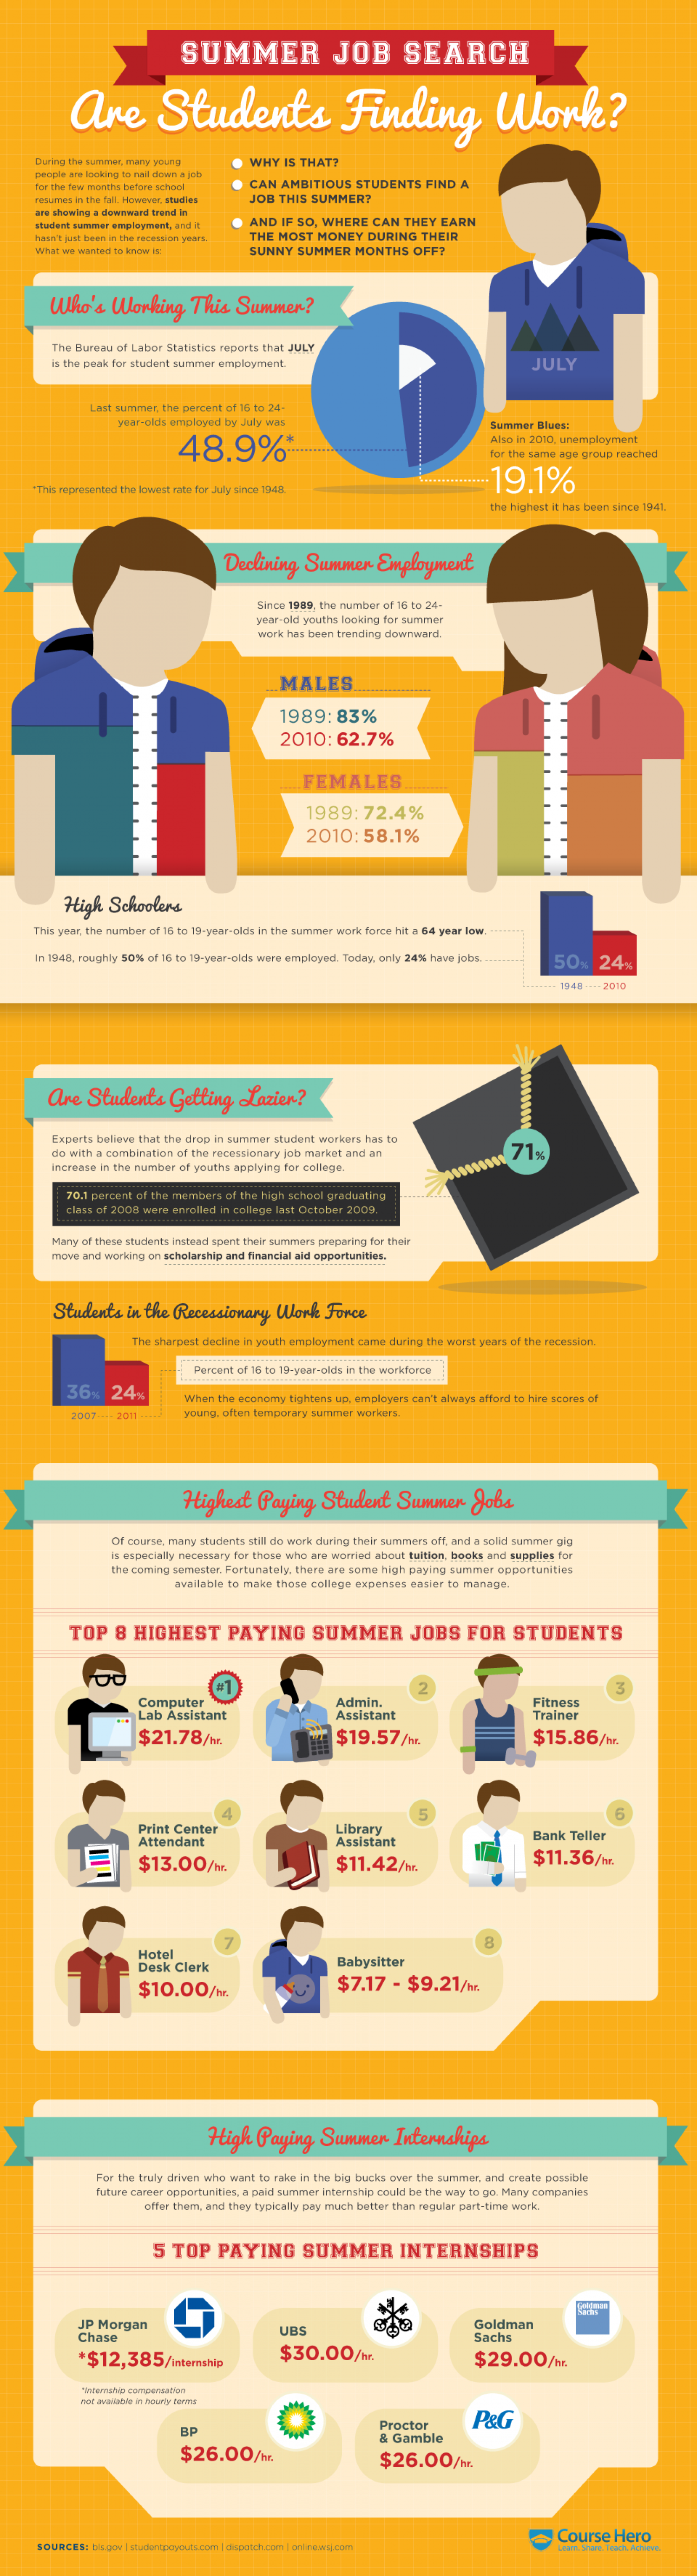 Summer Job Search Infographic